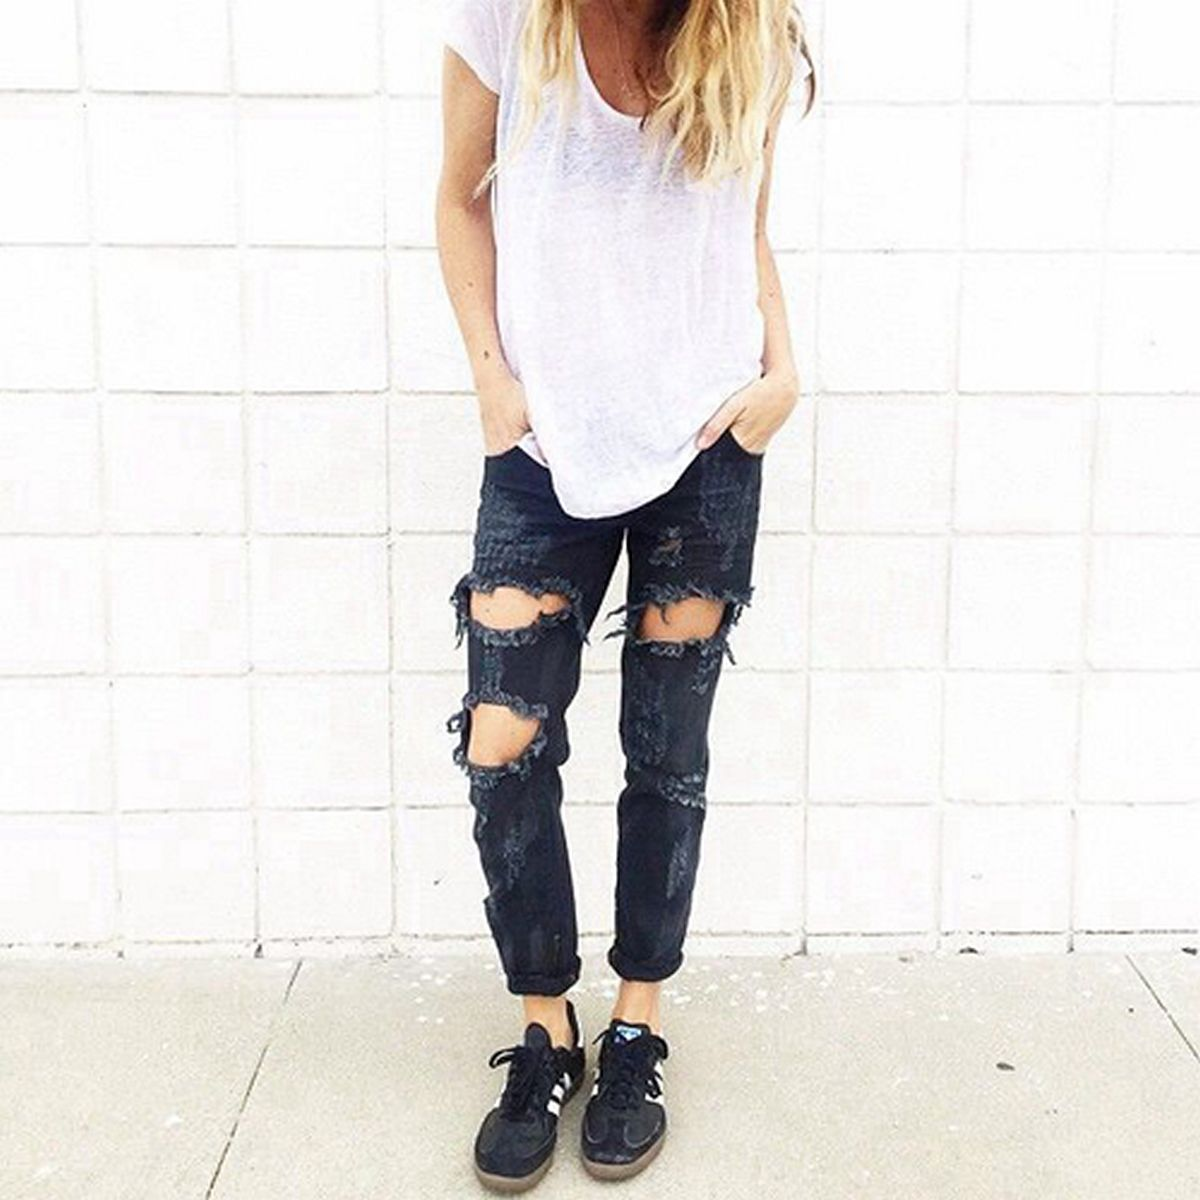 If femenine is not your style, these outfits are what you were looking for (76)